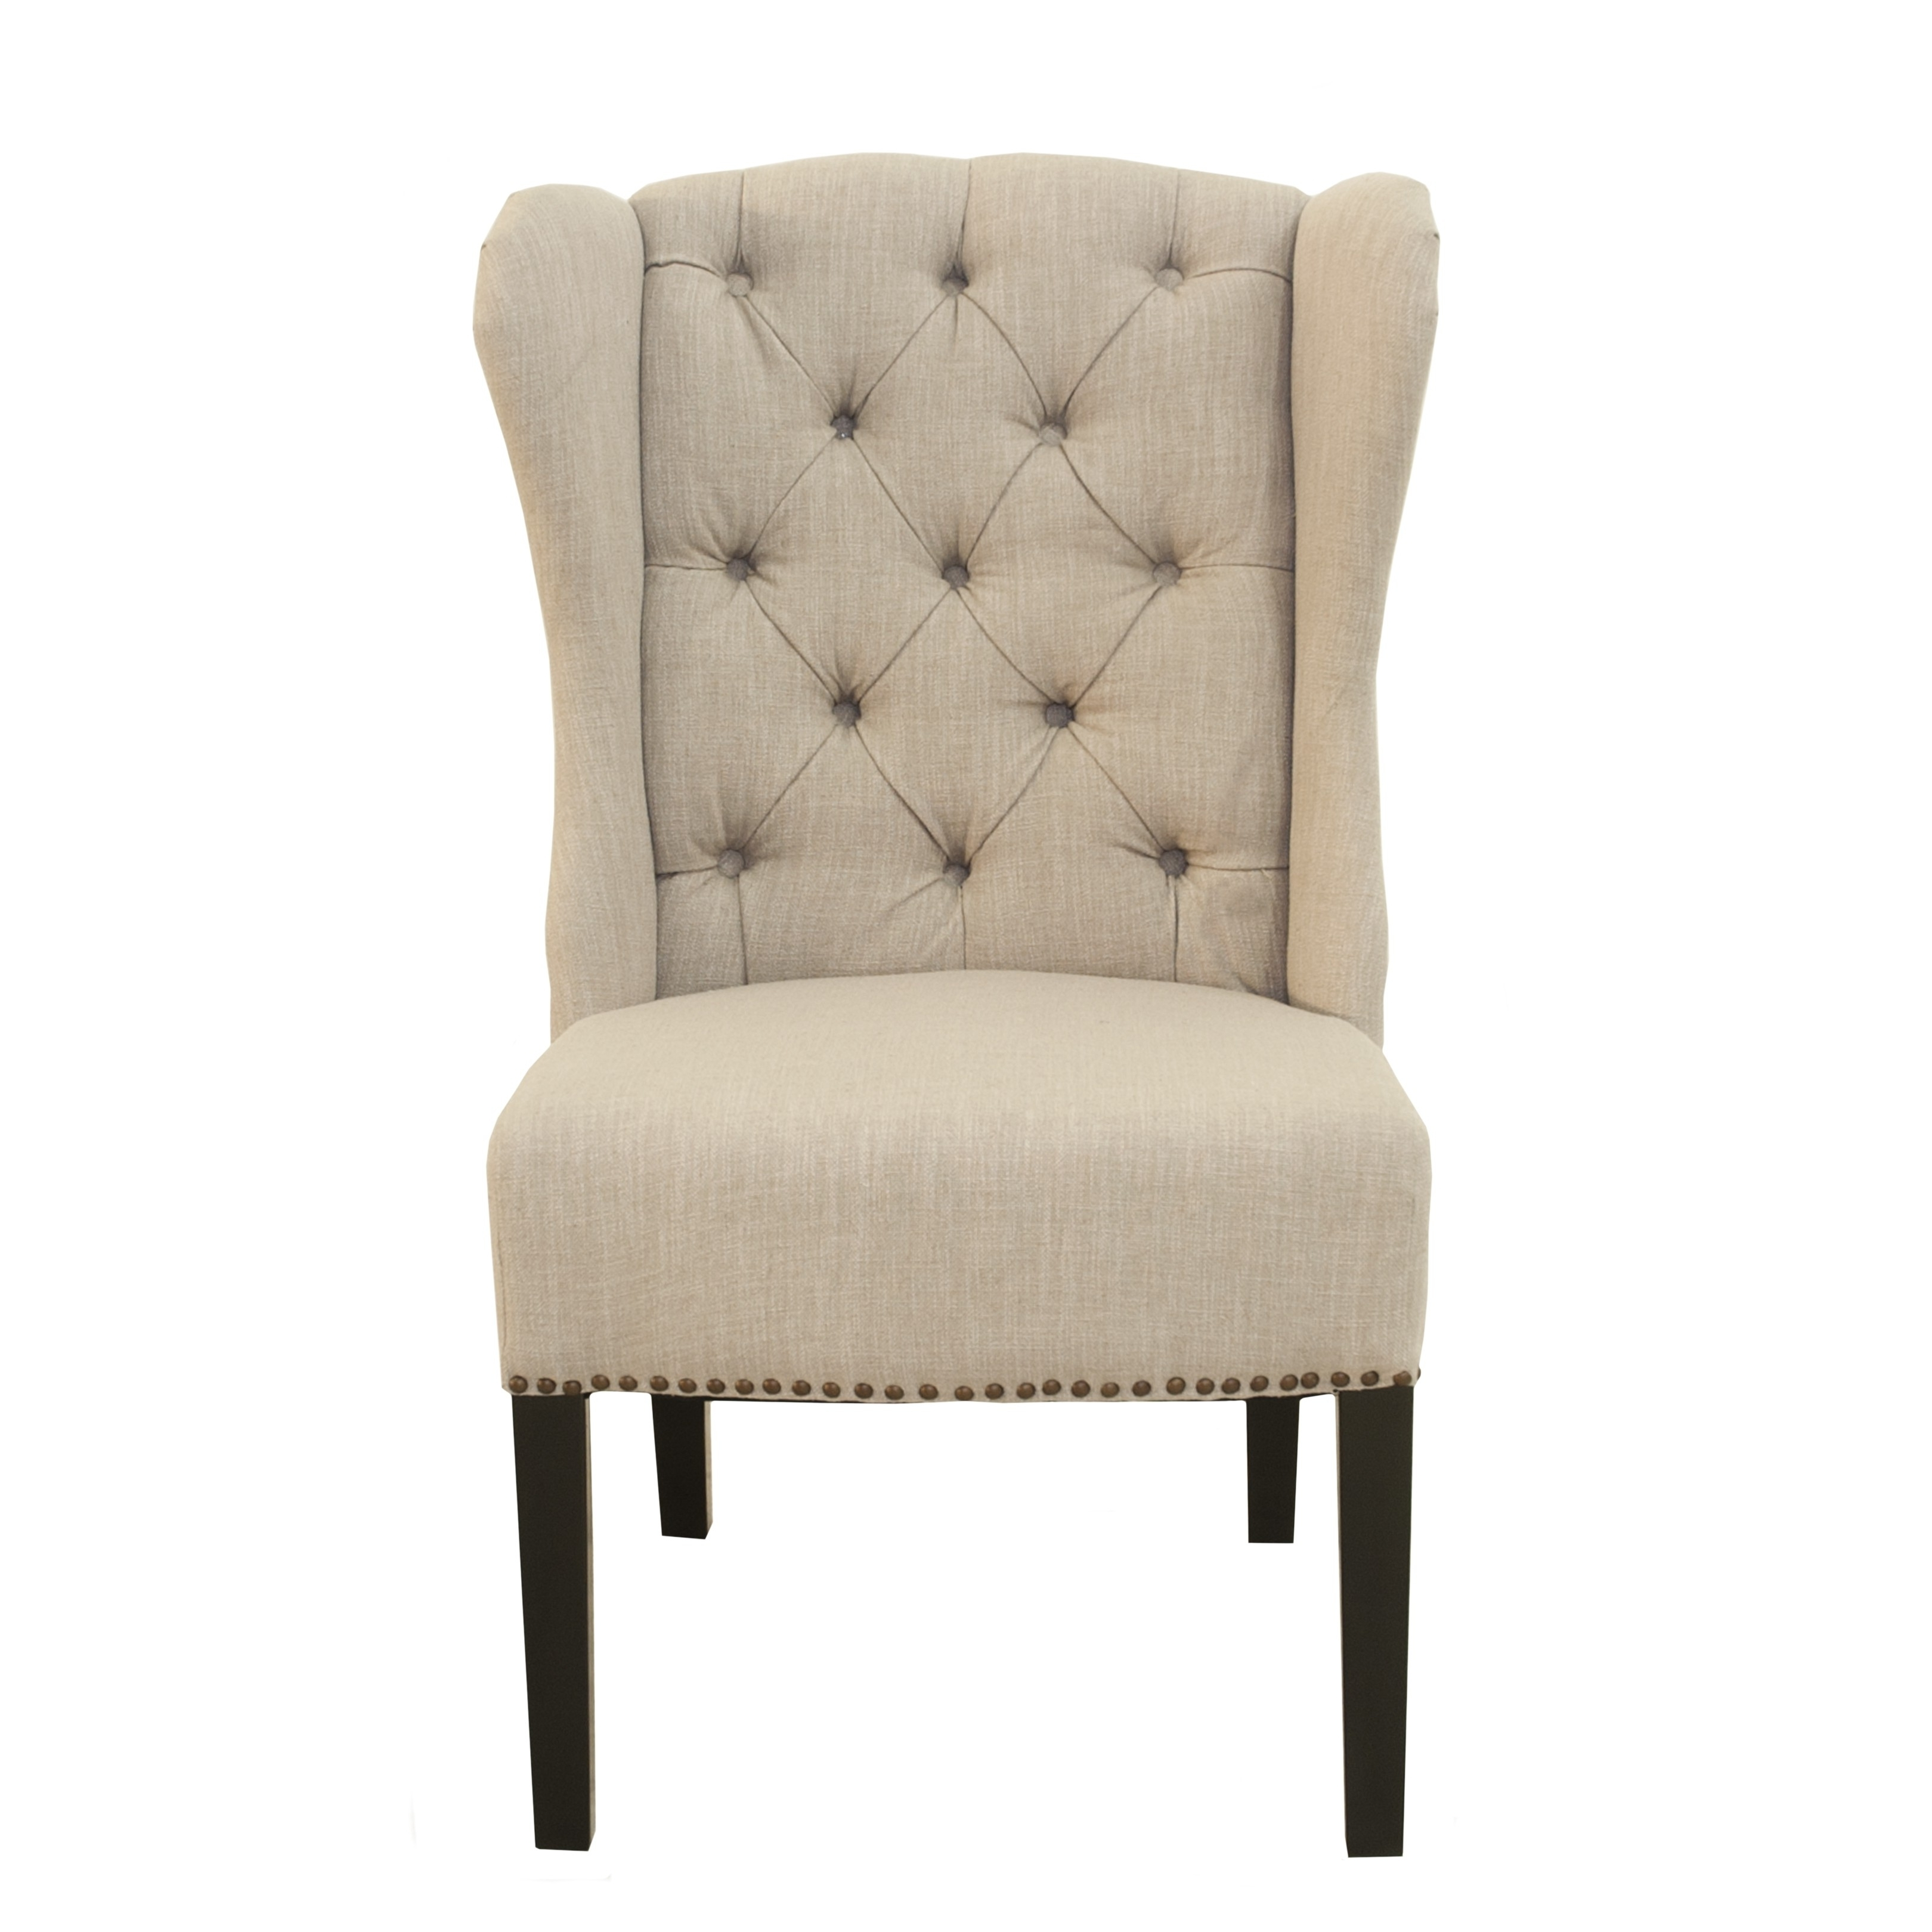 Dining Sofa Chairs With Regard To Popular Wingback Dining Inspirations Including Room Chairs Pictures (View 9 of 20)